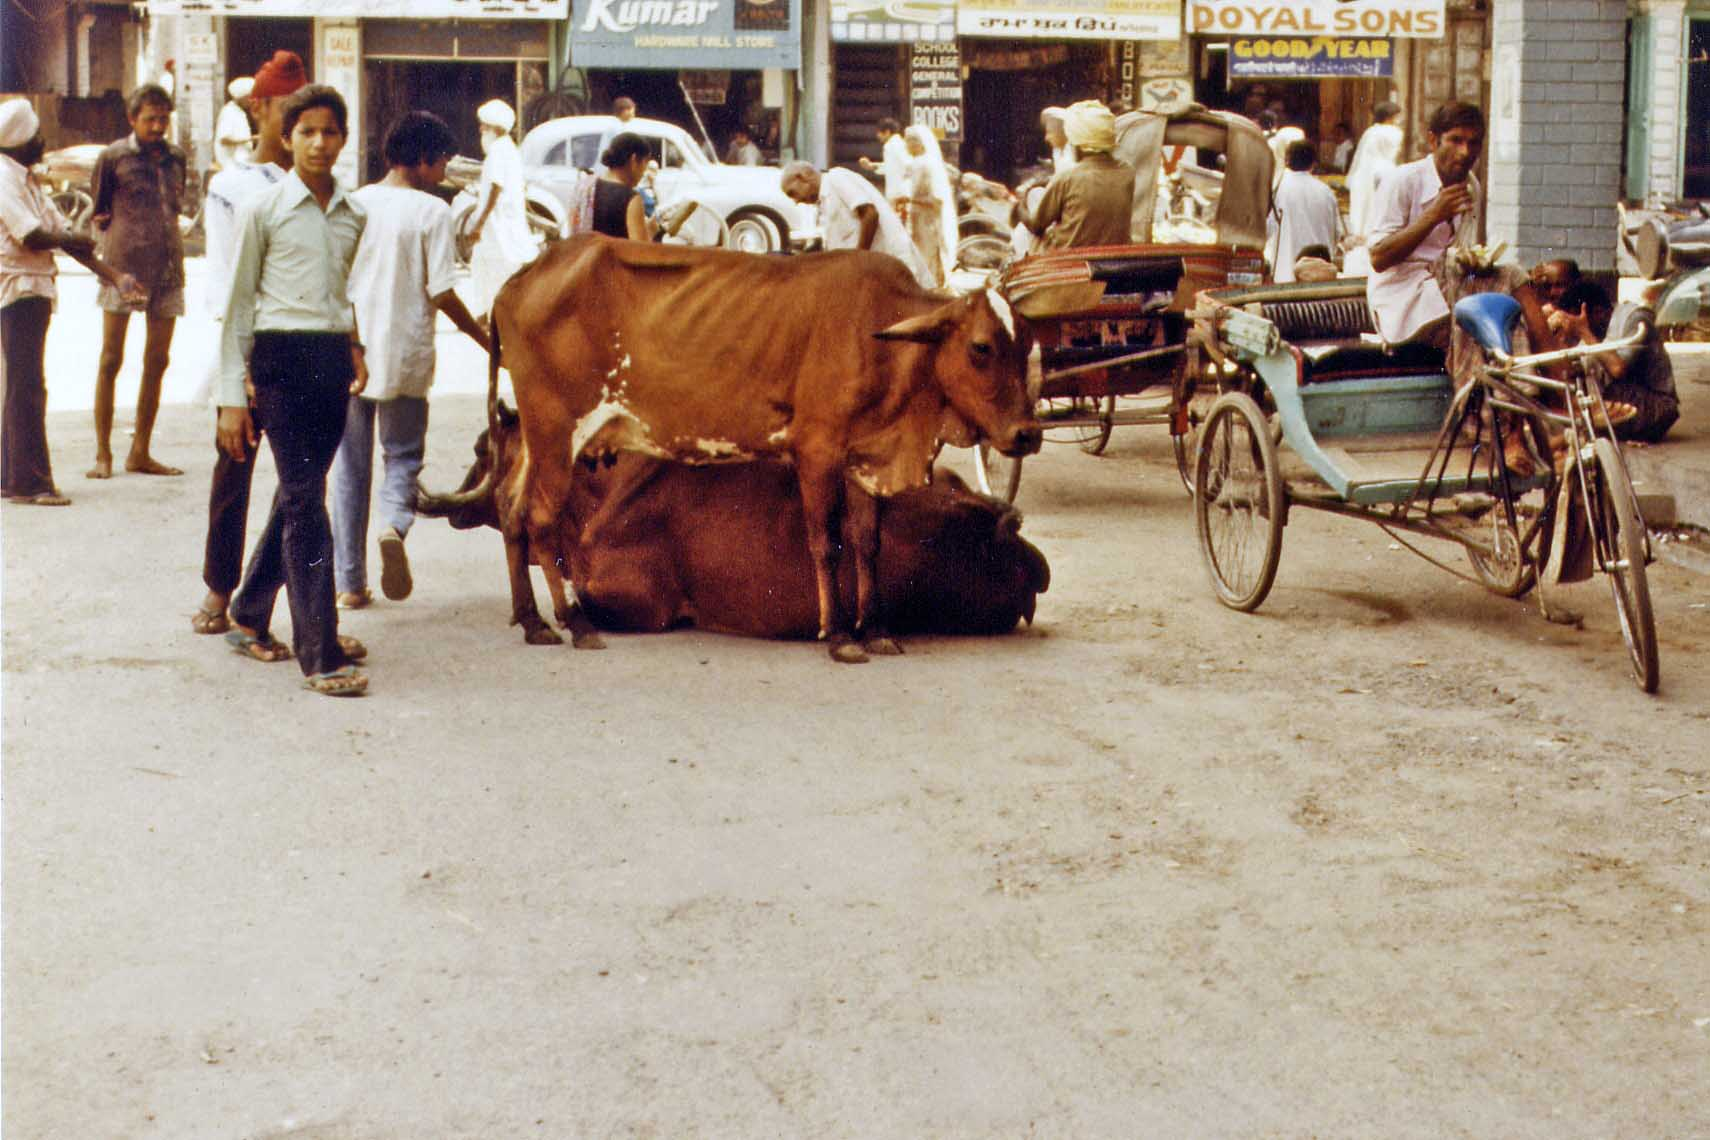 Holy cows in the street of Amritsar India